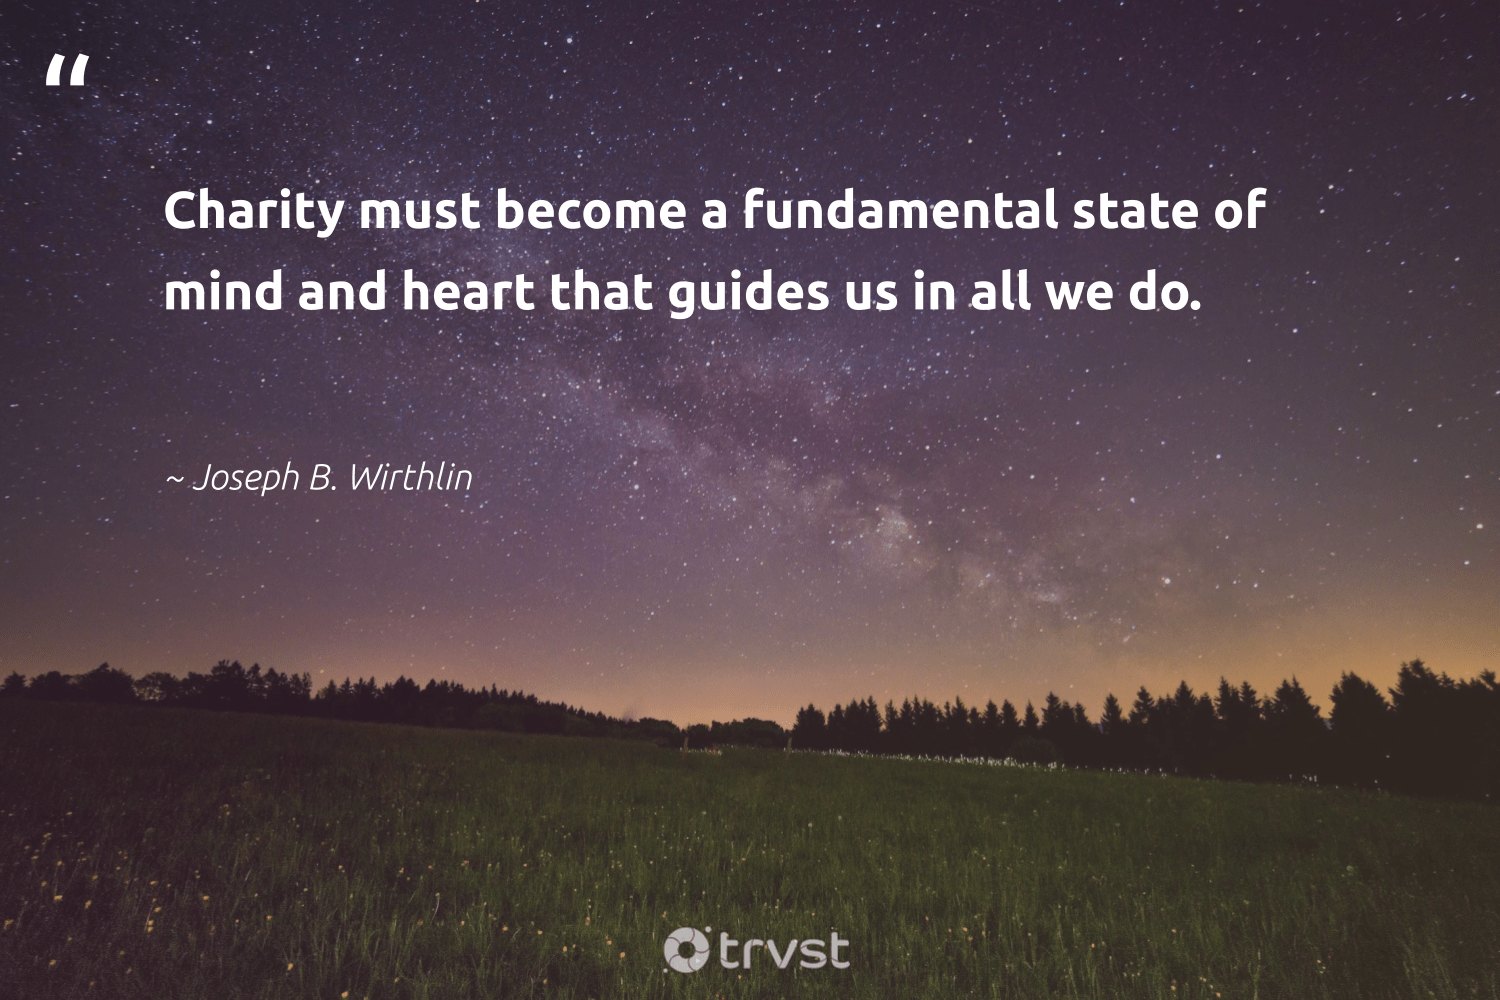 """""""Charity must become a fundamental state of mind and heart that guides us in all we do.""""  - Joseph B. Wirthlin #trvst #quotes #giveback #changetheworld #weareallone #ecoconscious #equalopportunity #takeaction #workingtogether #thinkgreen #dogood #collectiveaction"""